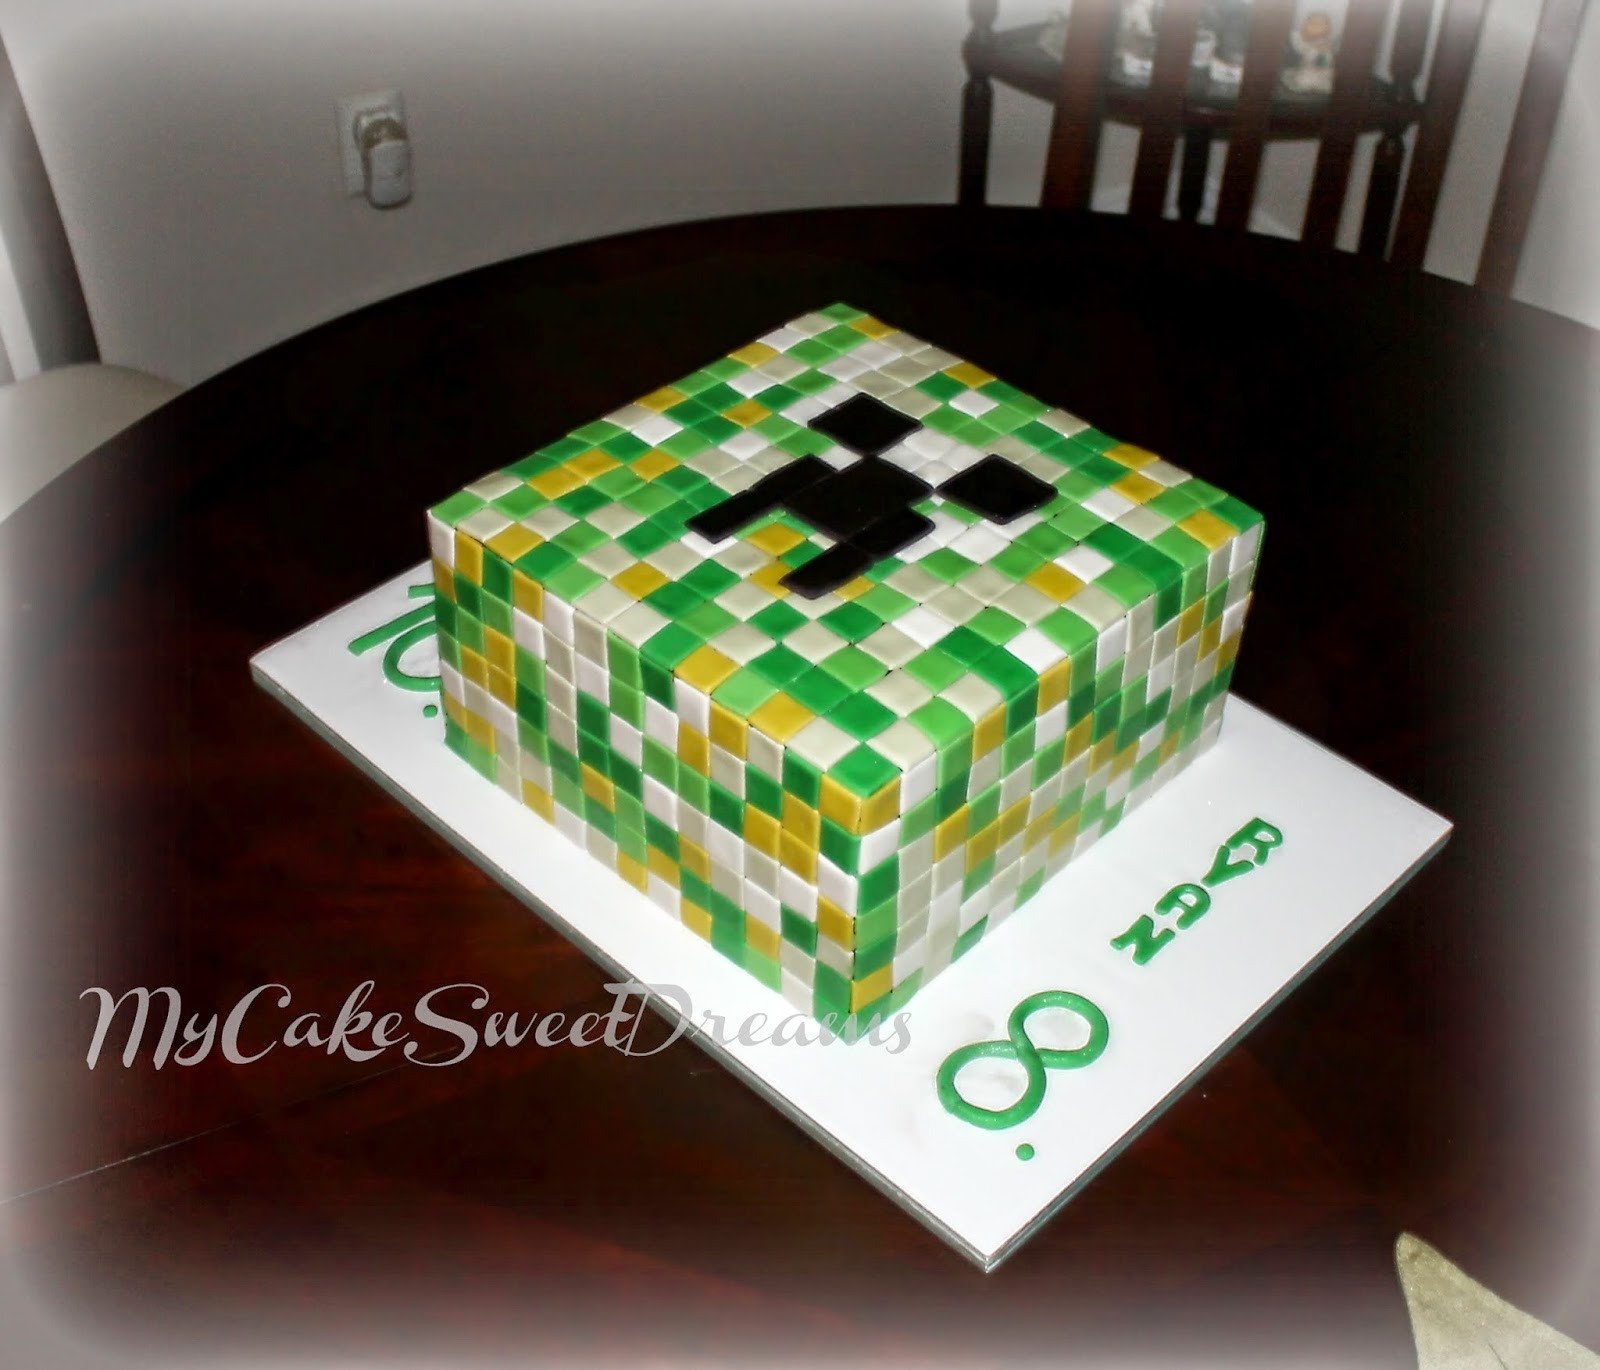 My Cake Sweet Dreams Minecraft Birthday Cake